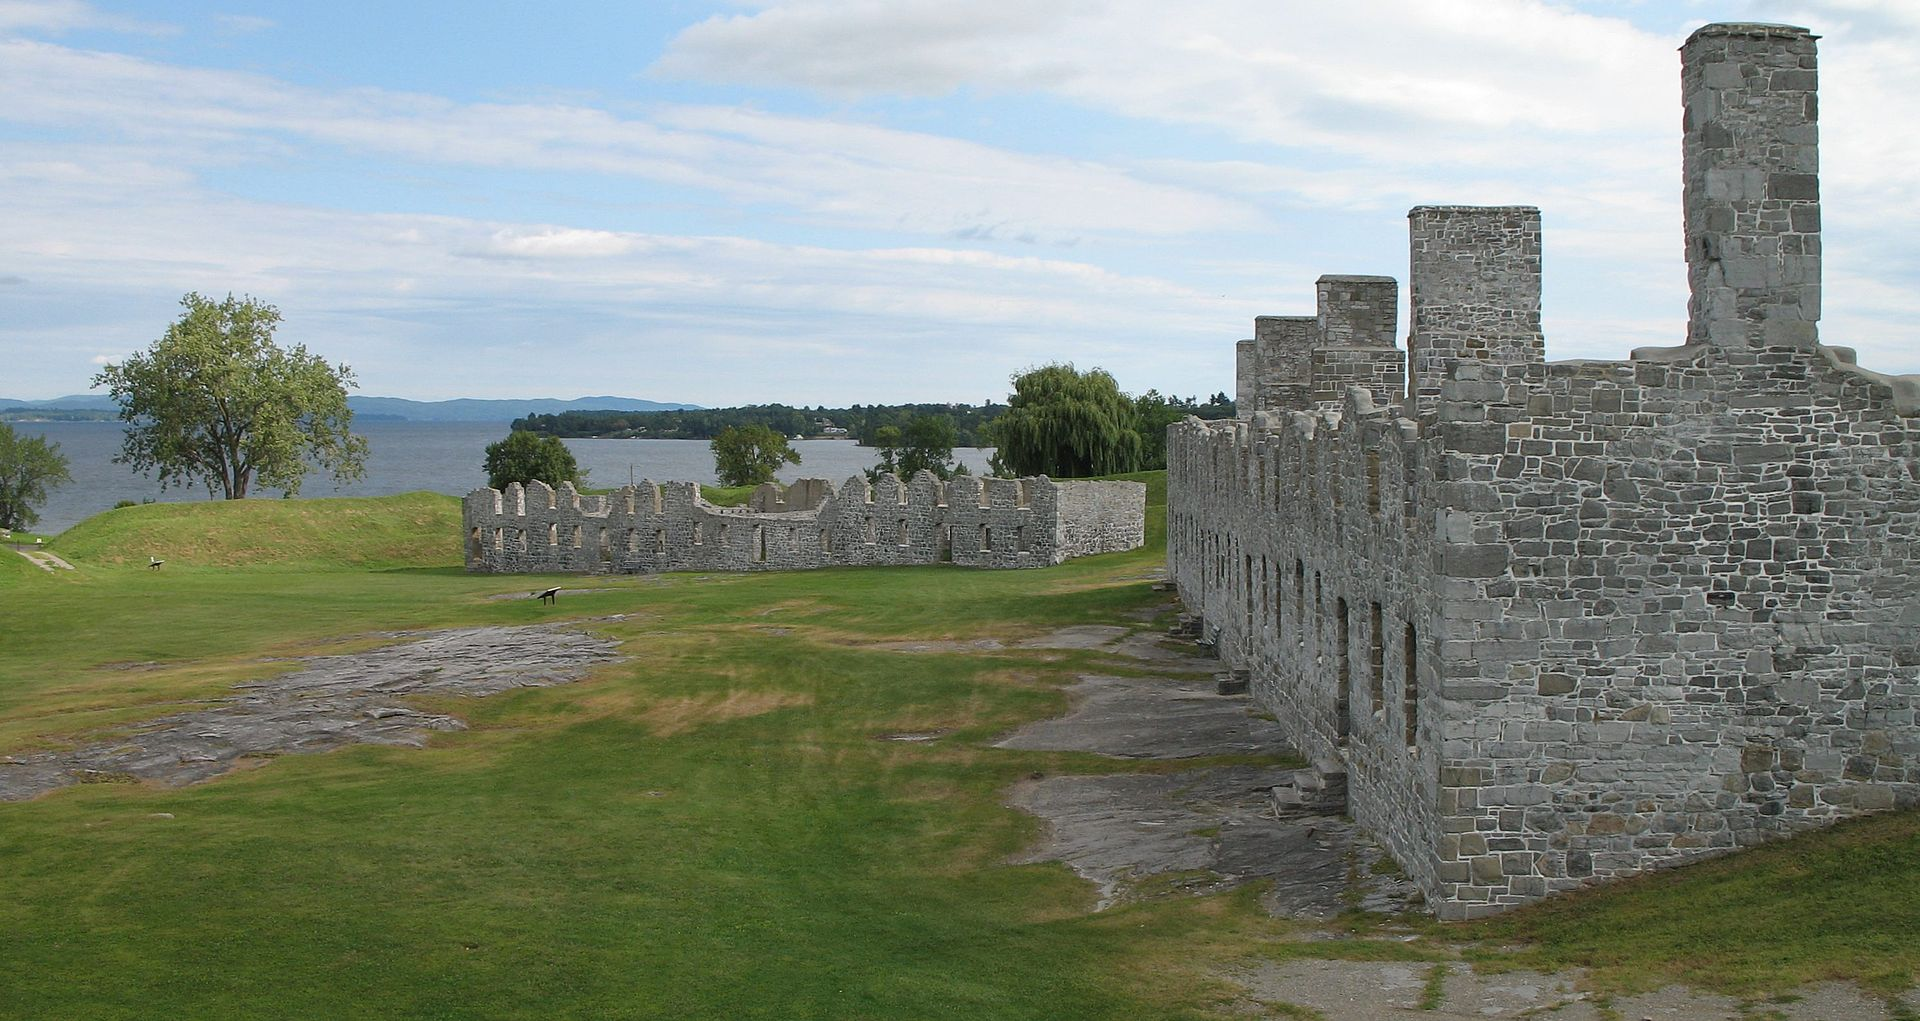 Ruins of Fort Crown Point, which was mostly an earthen fortress, the largest one built in the country.